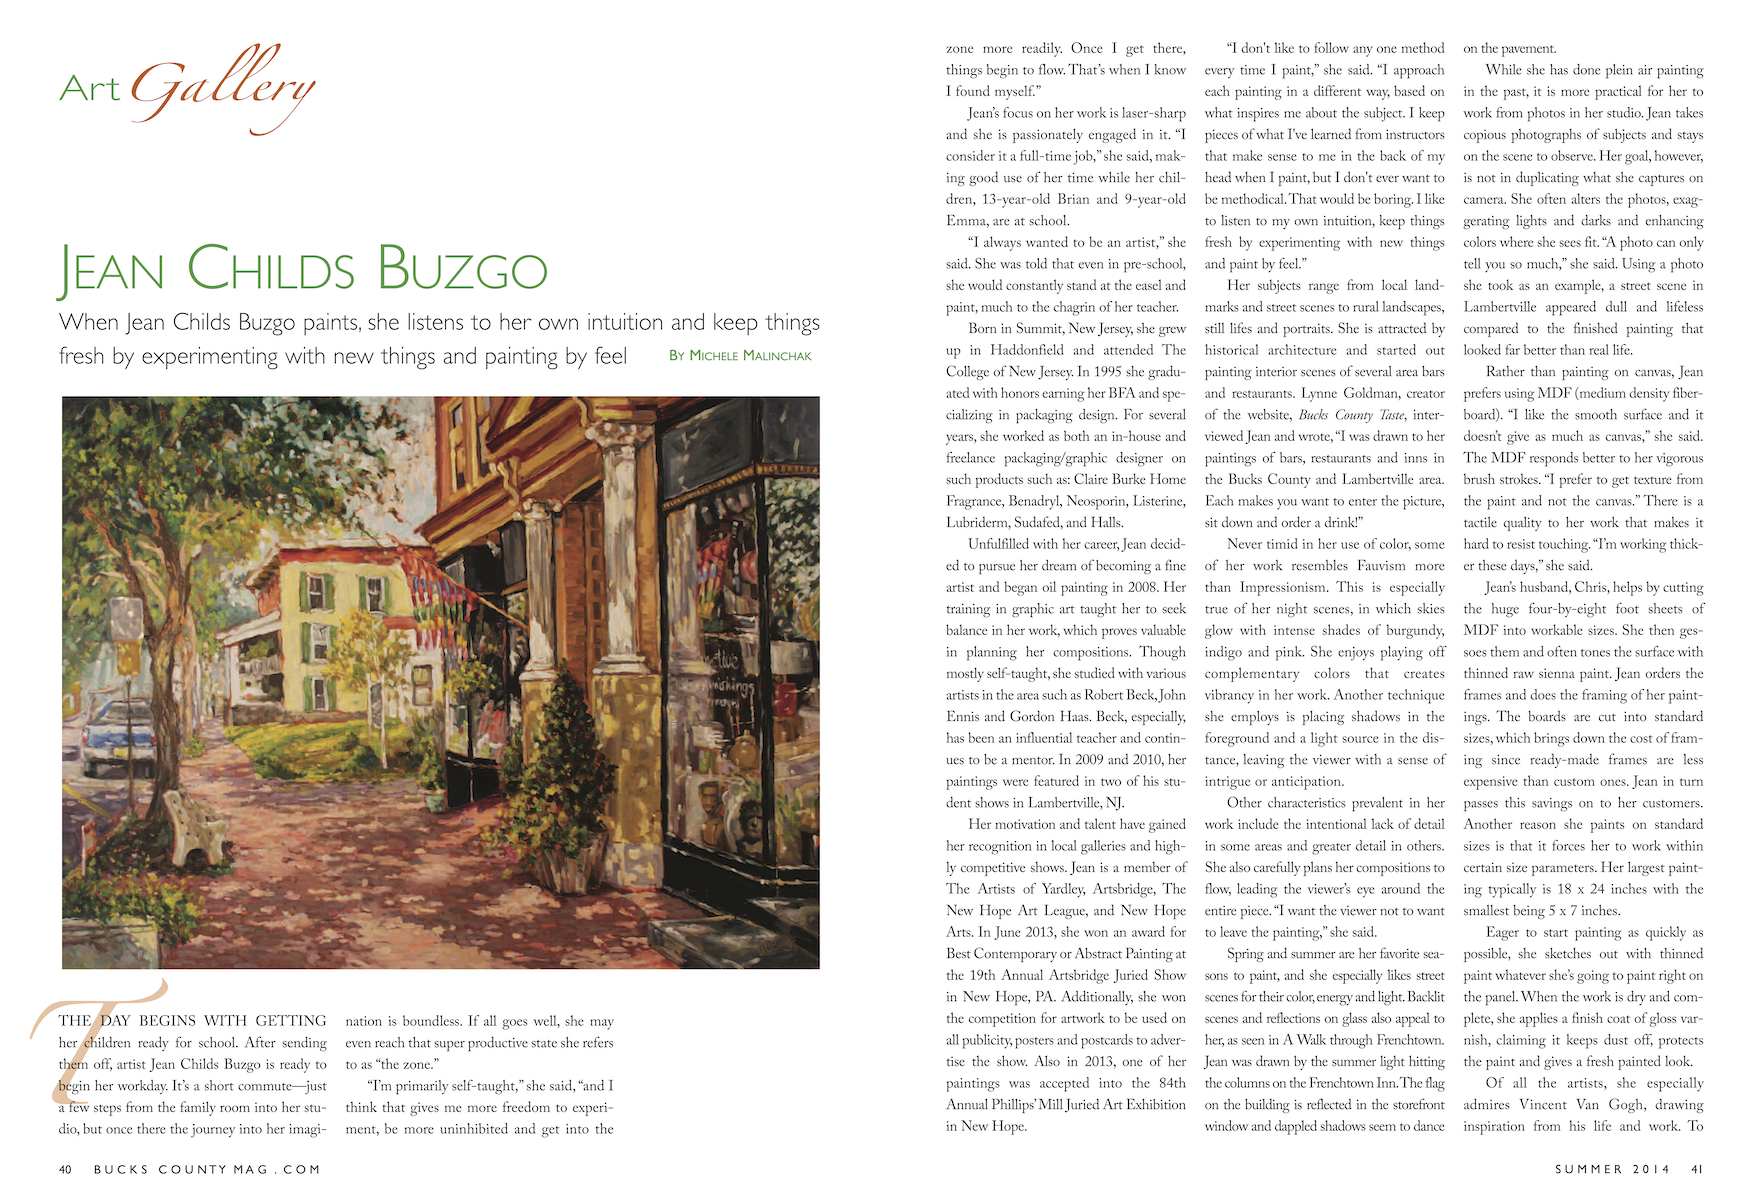 Bucks County Magazine Article